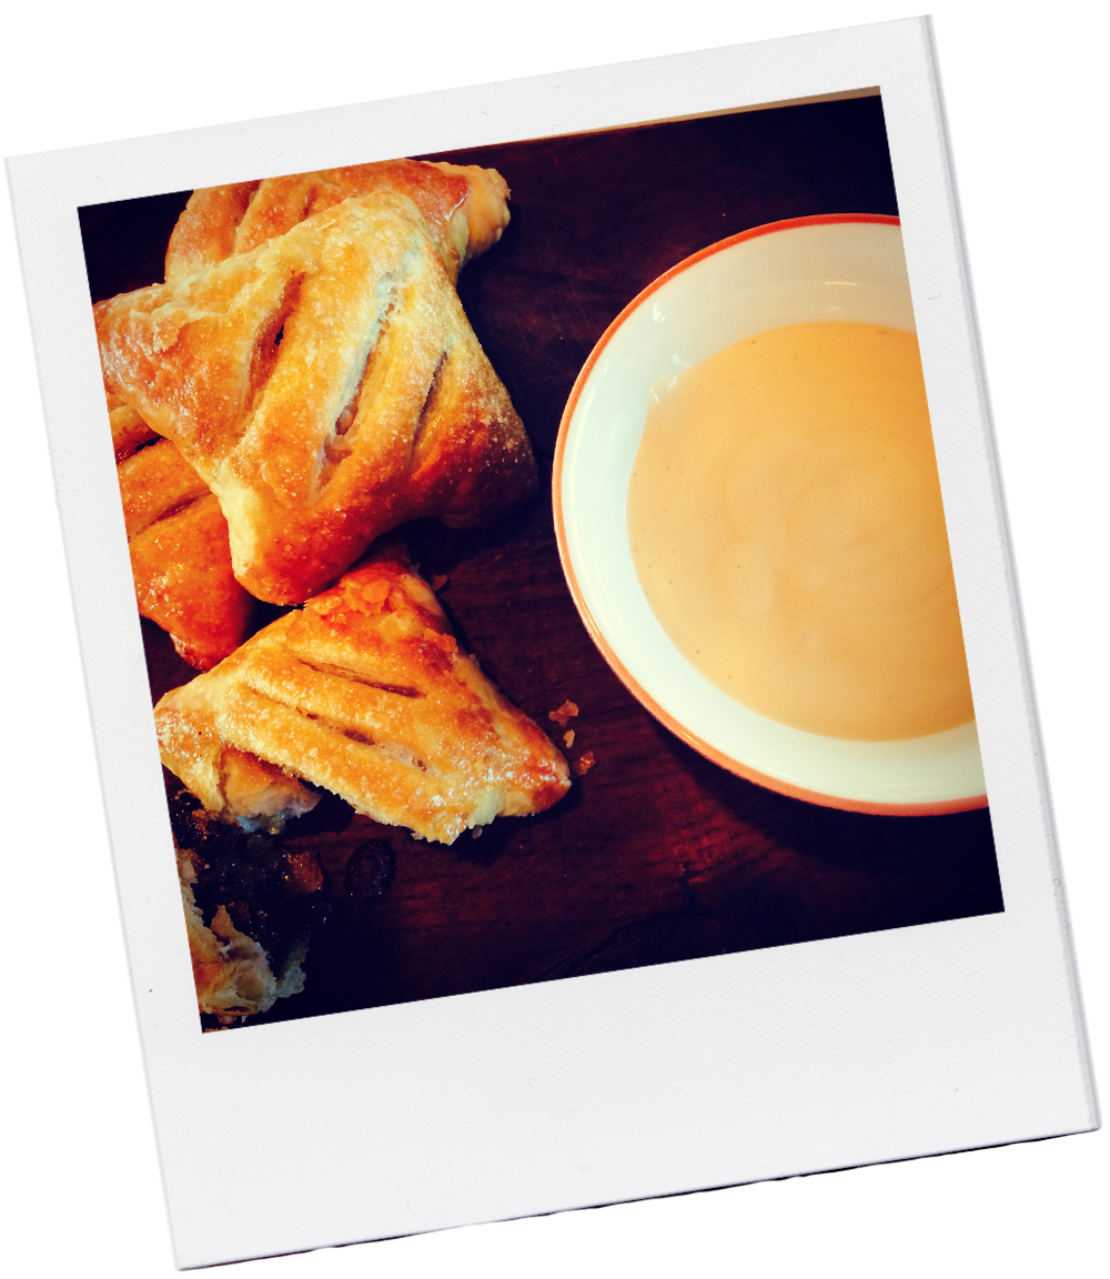 Eccles cakes and Earl Grey custard